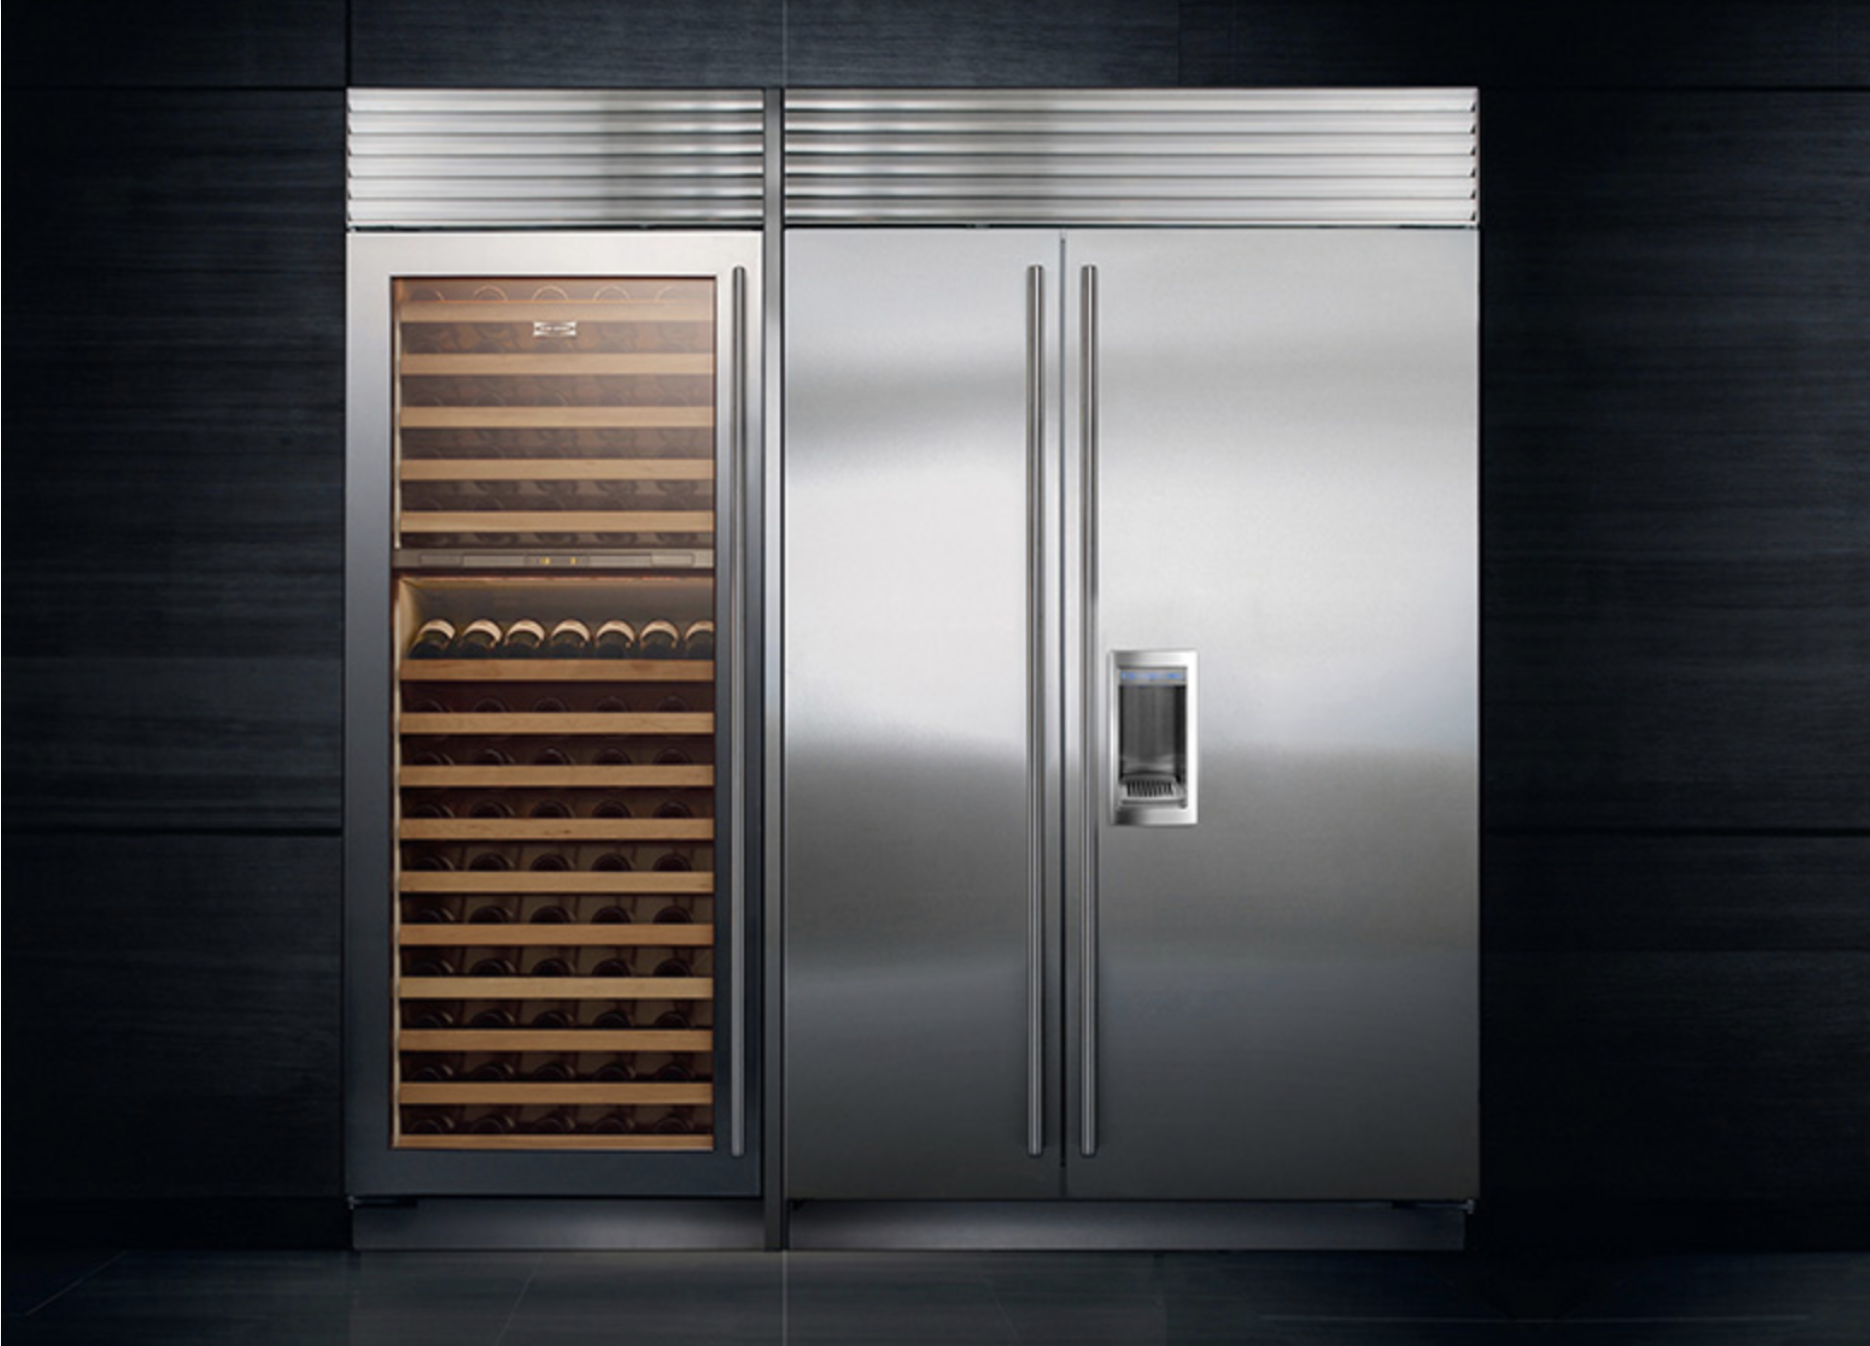 The Ultimate Guide To Fixing Your Sub Zero Ice Maker Wilshire Refrigeration Appliance